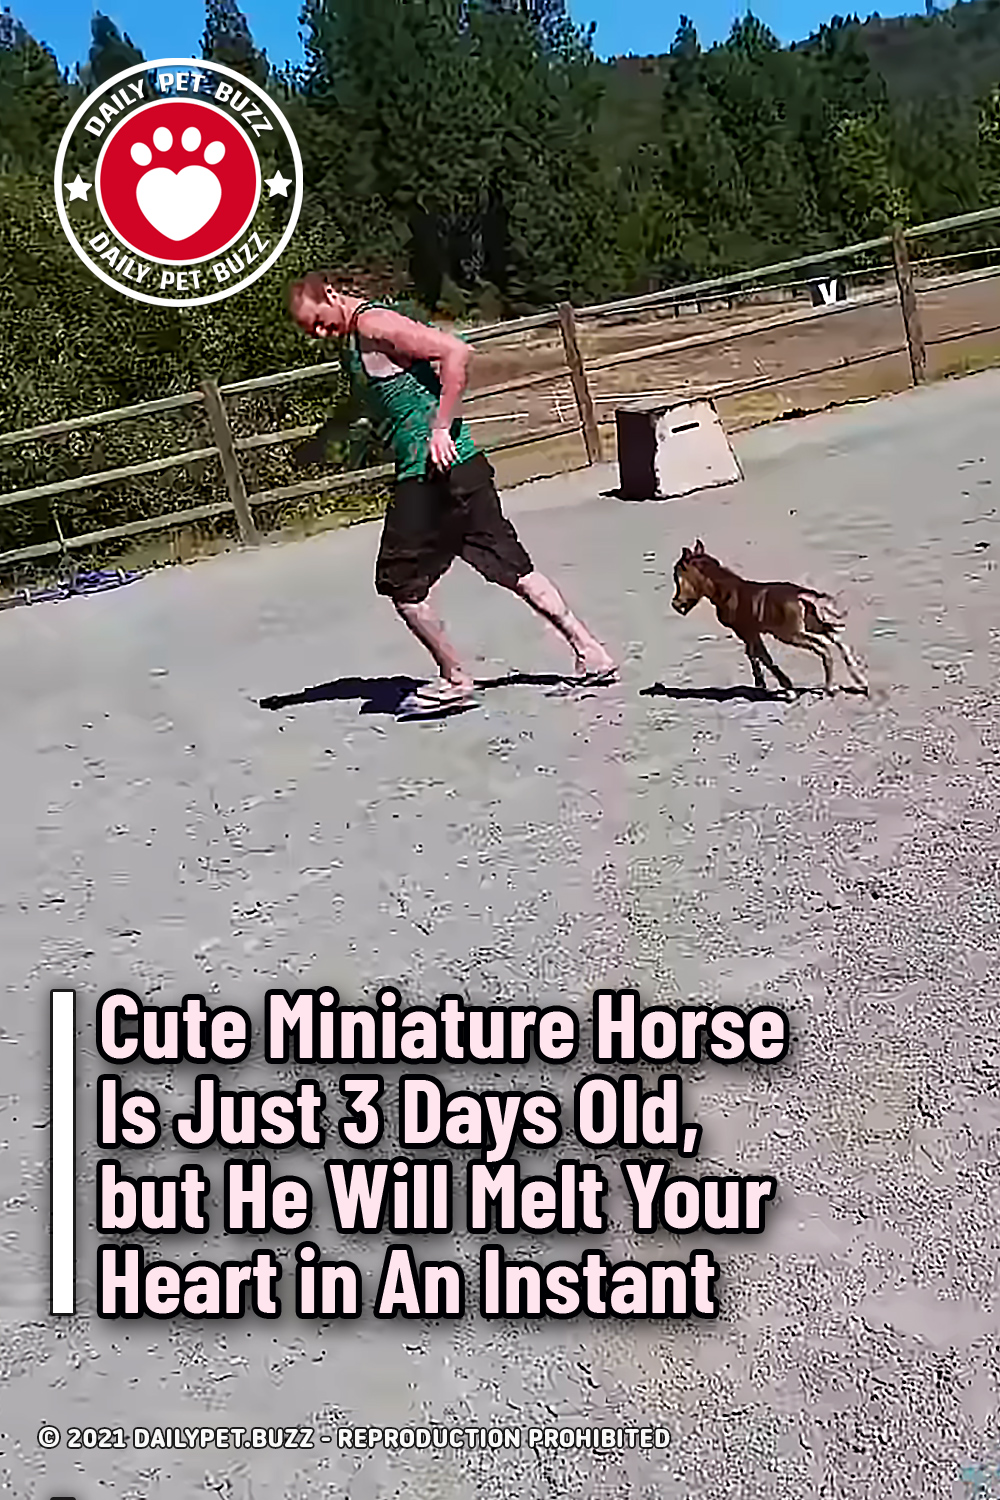 Cute Miniature Horse Is Just 3 Days Old, but He Will Melt Your Heart in An Instant